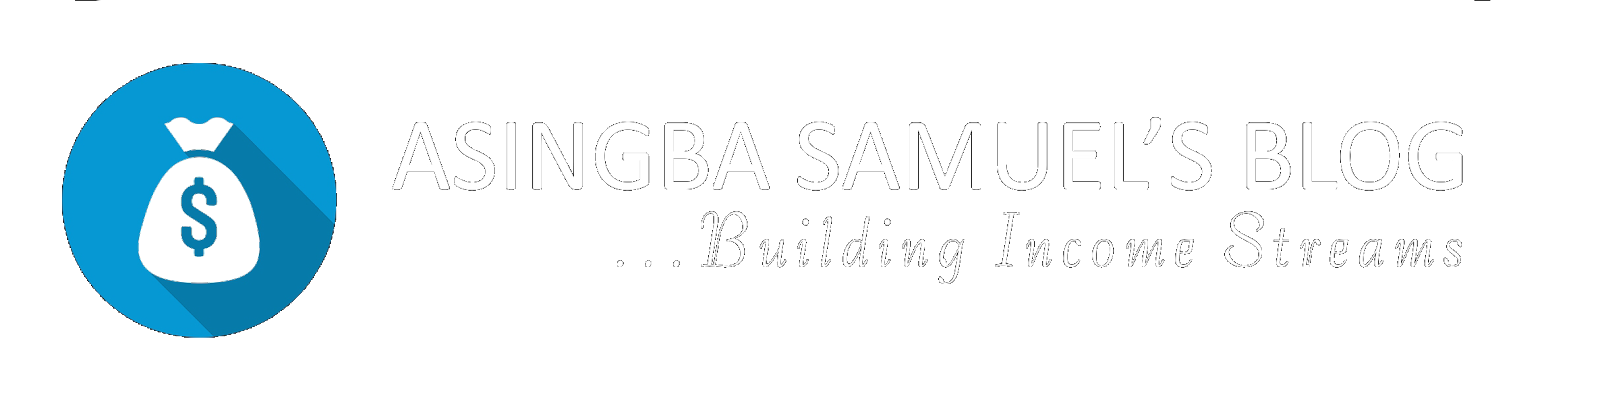 Asingba Samuel's Blog - Building Income Streams